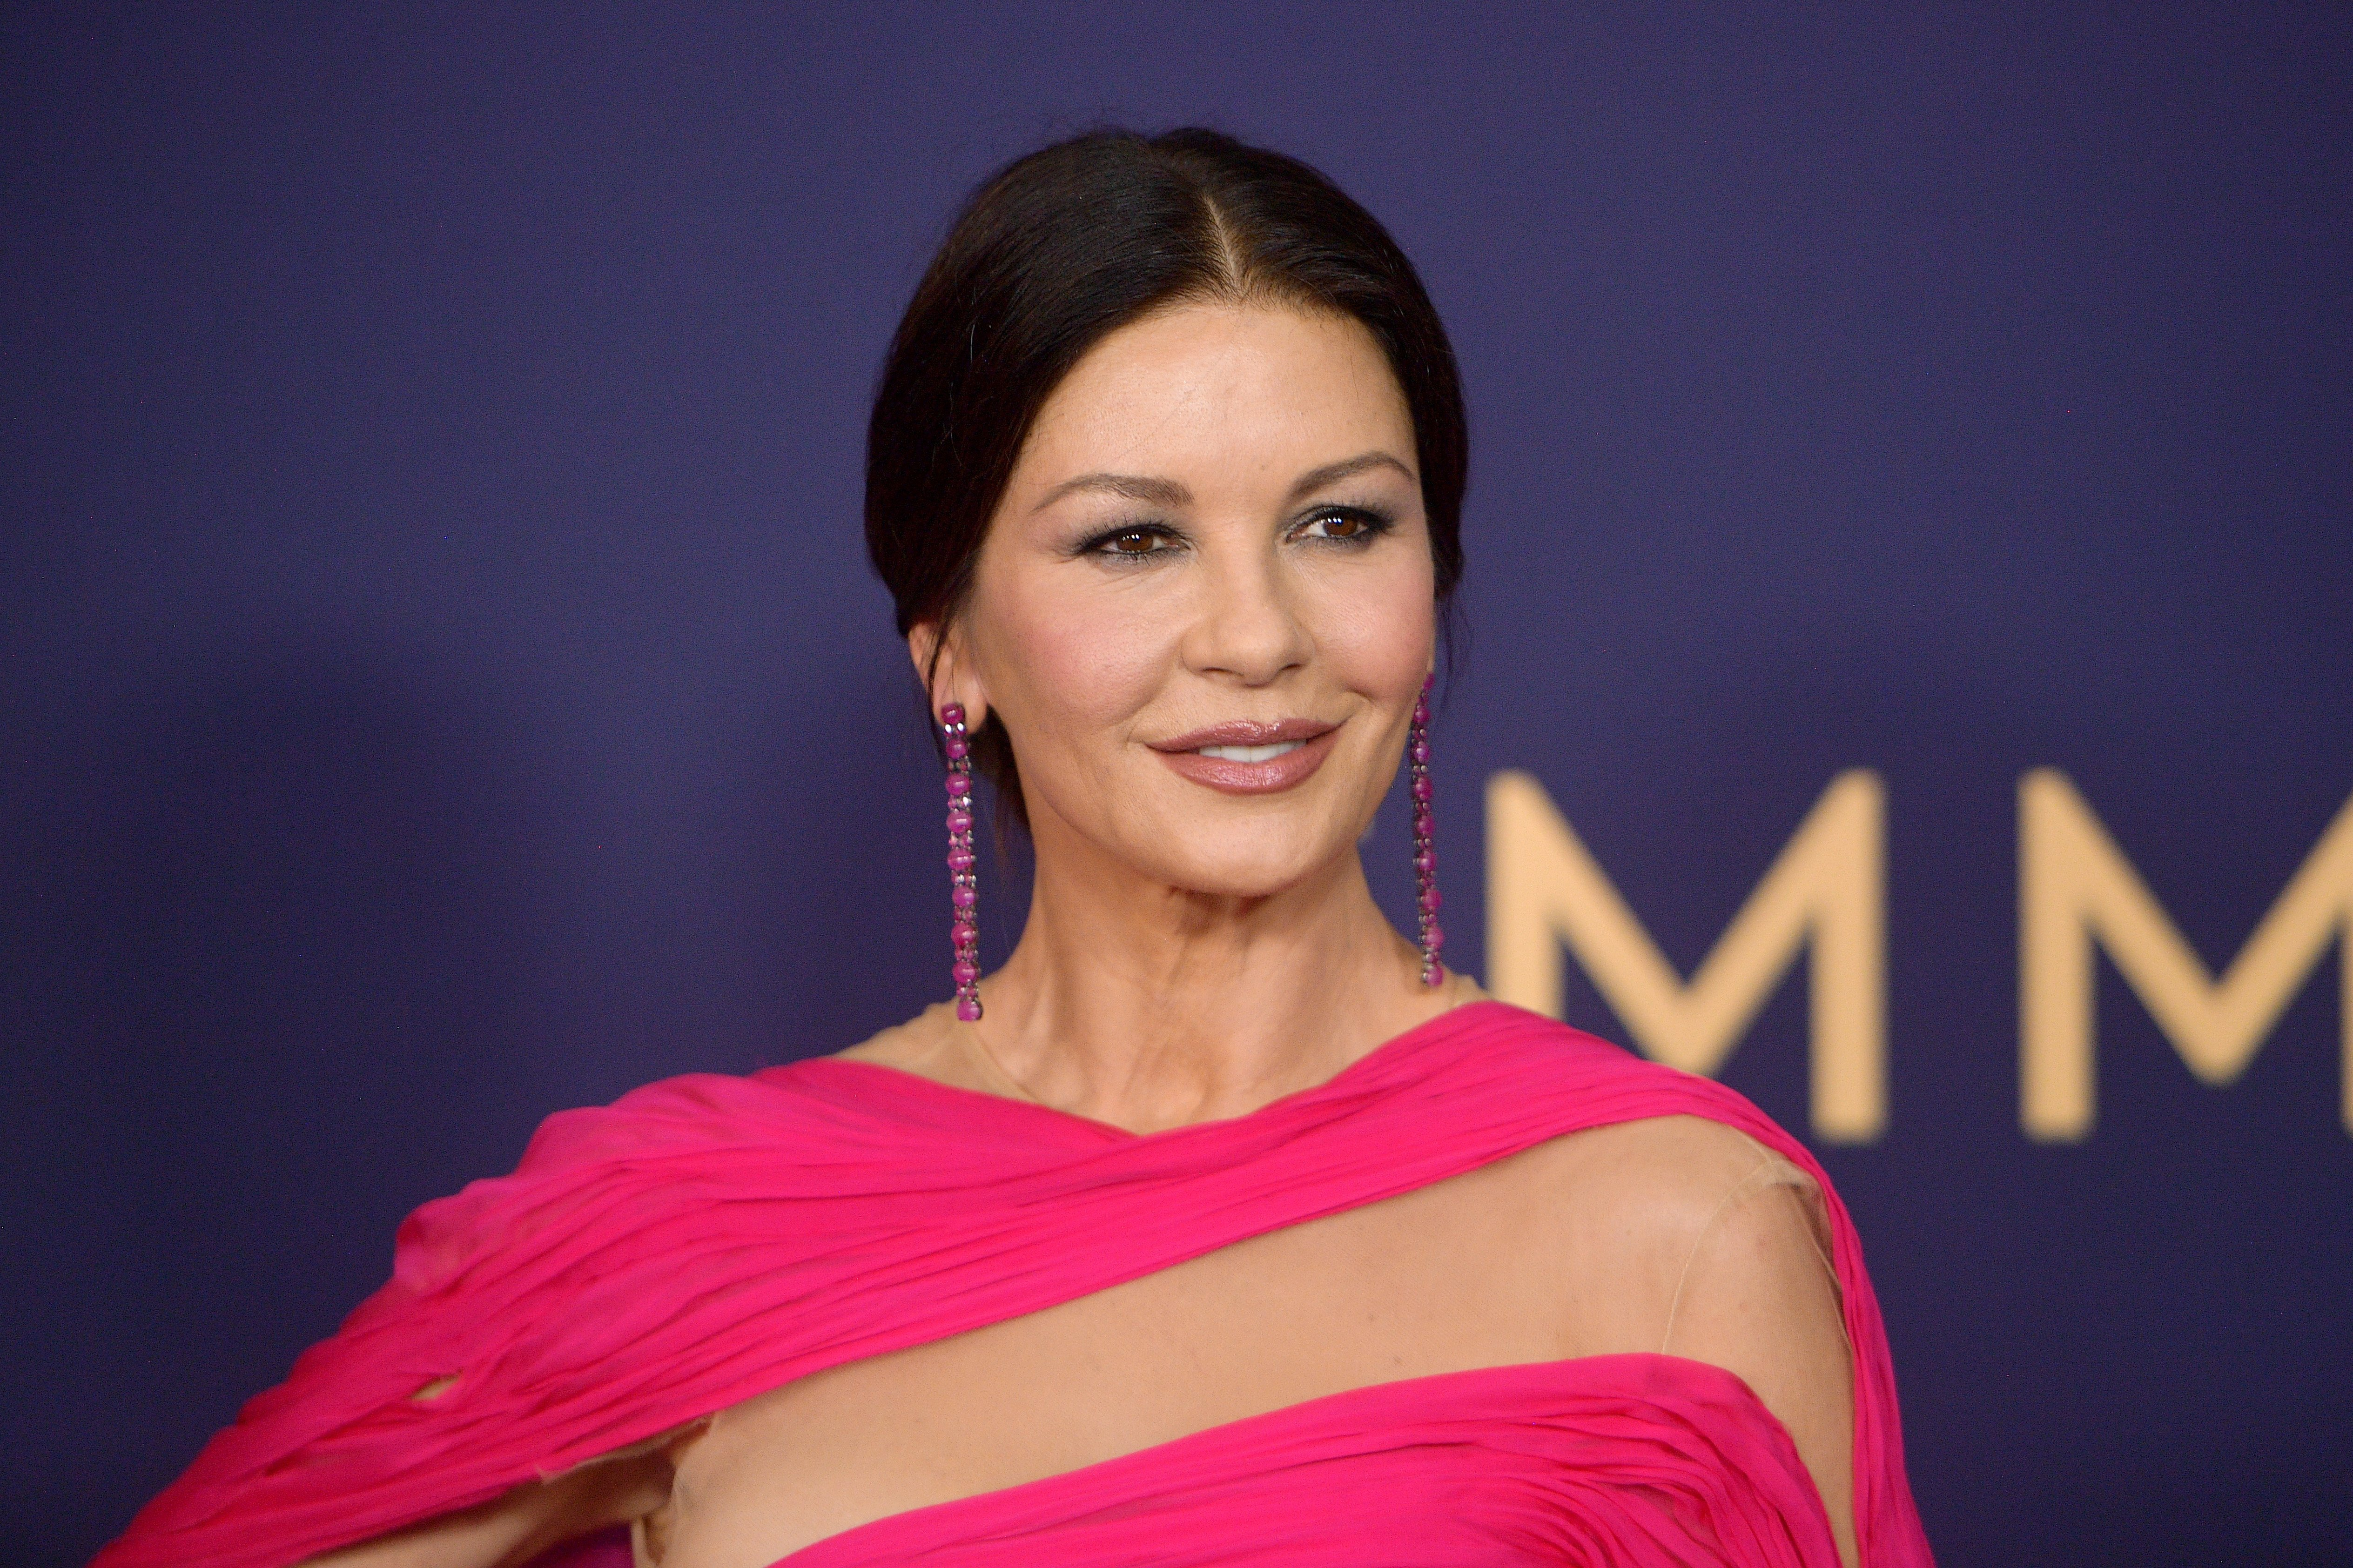 Catherine Zeta-Jones attends the 71st Emmy Awards at Microsoft Theater on September 22, 2019, in Los Angeles, California. | Source: Getty Images.